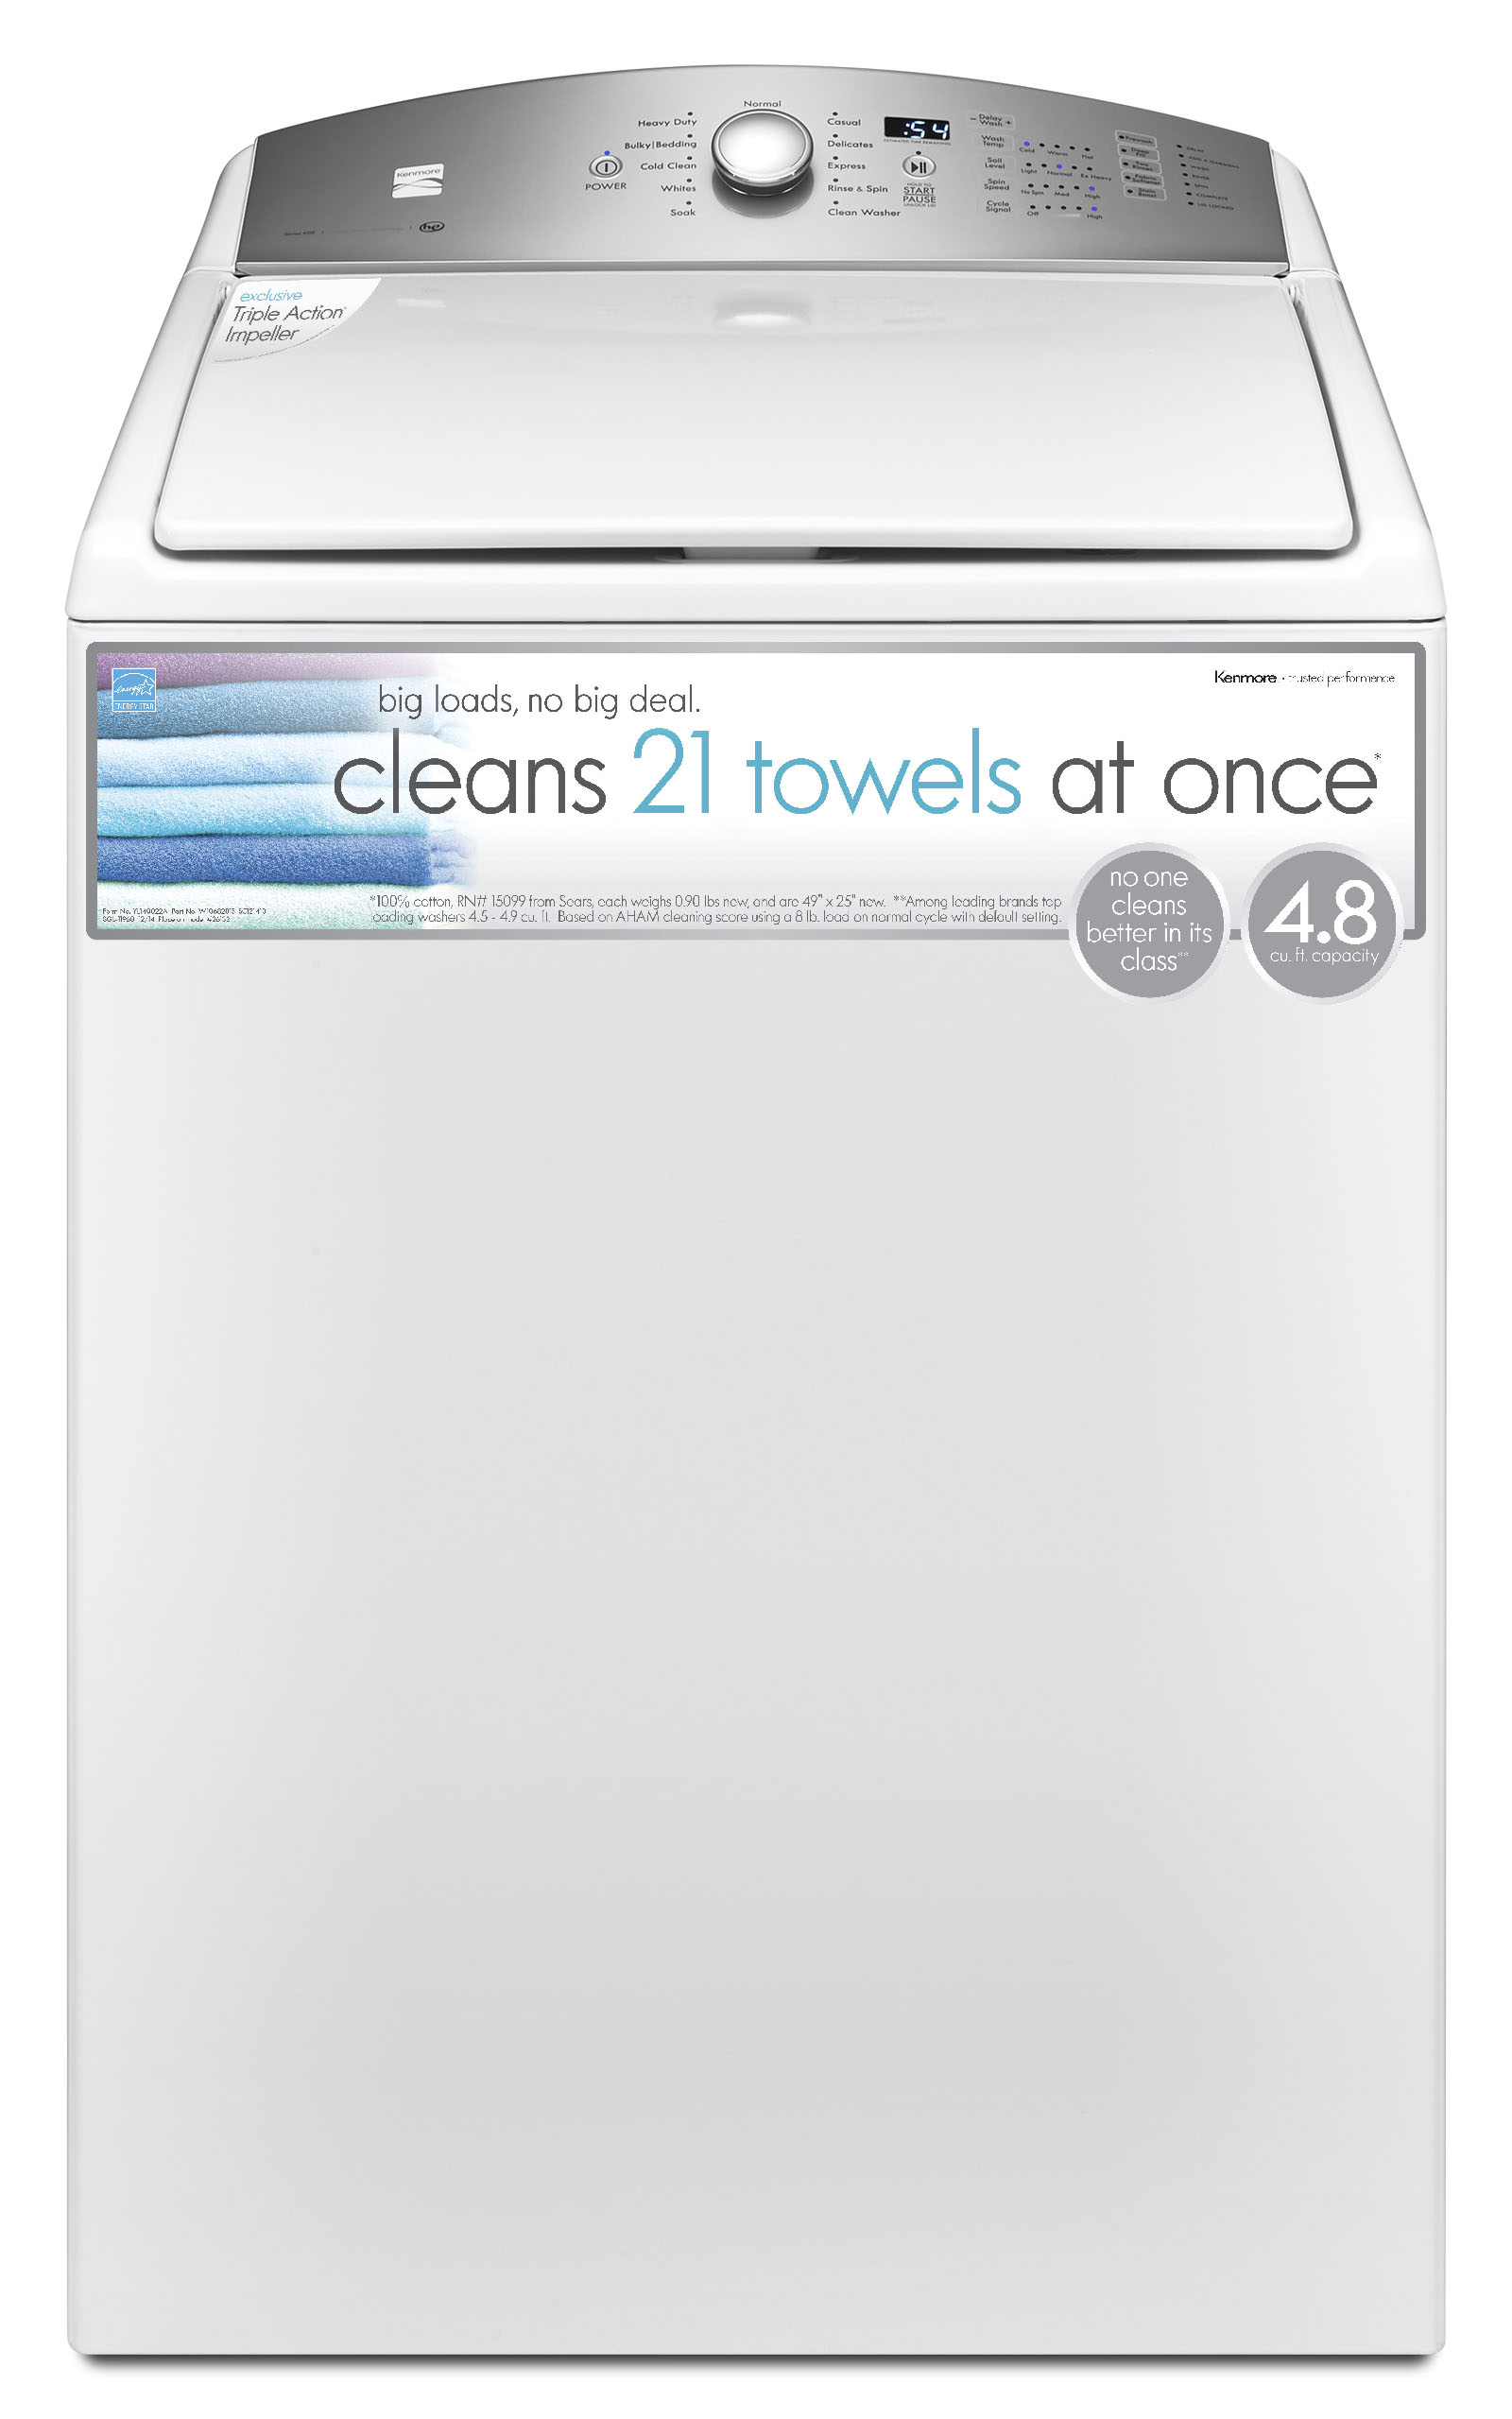 26132-4-8-cu-ft-Top-Load-Washer-White